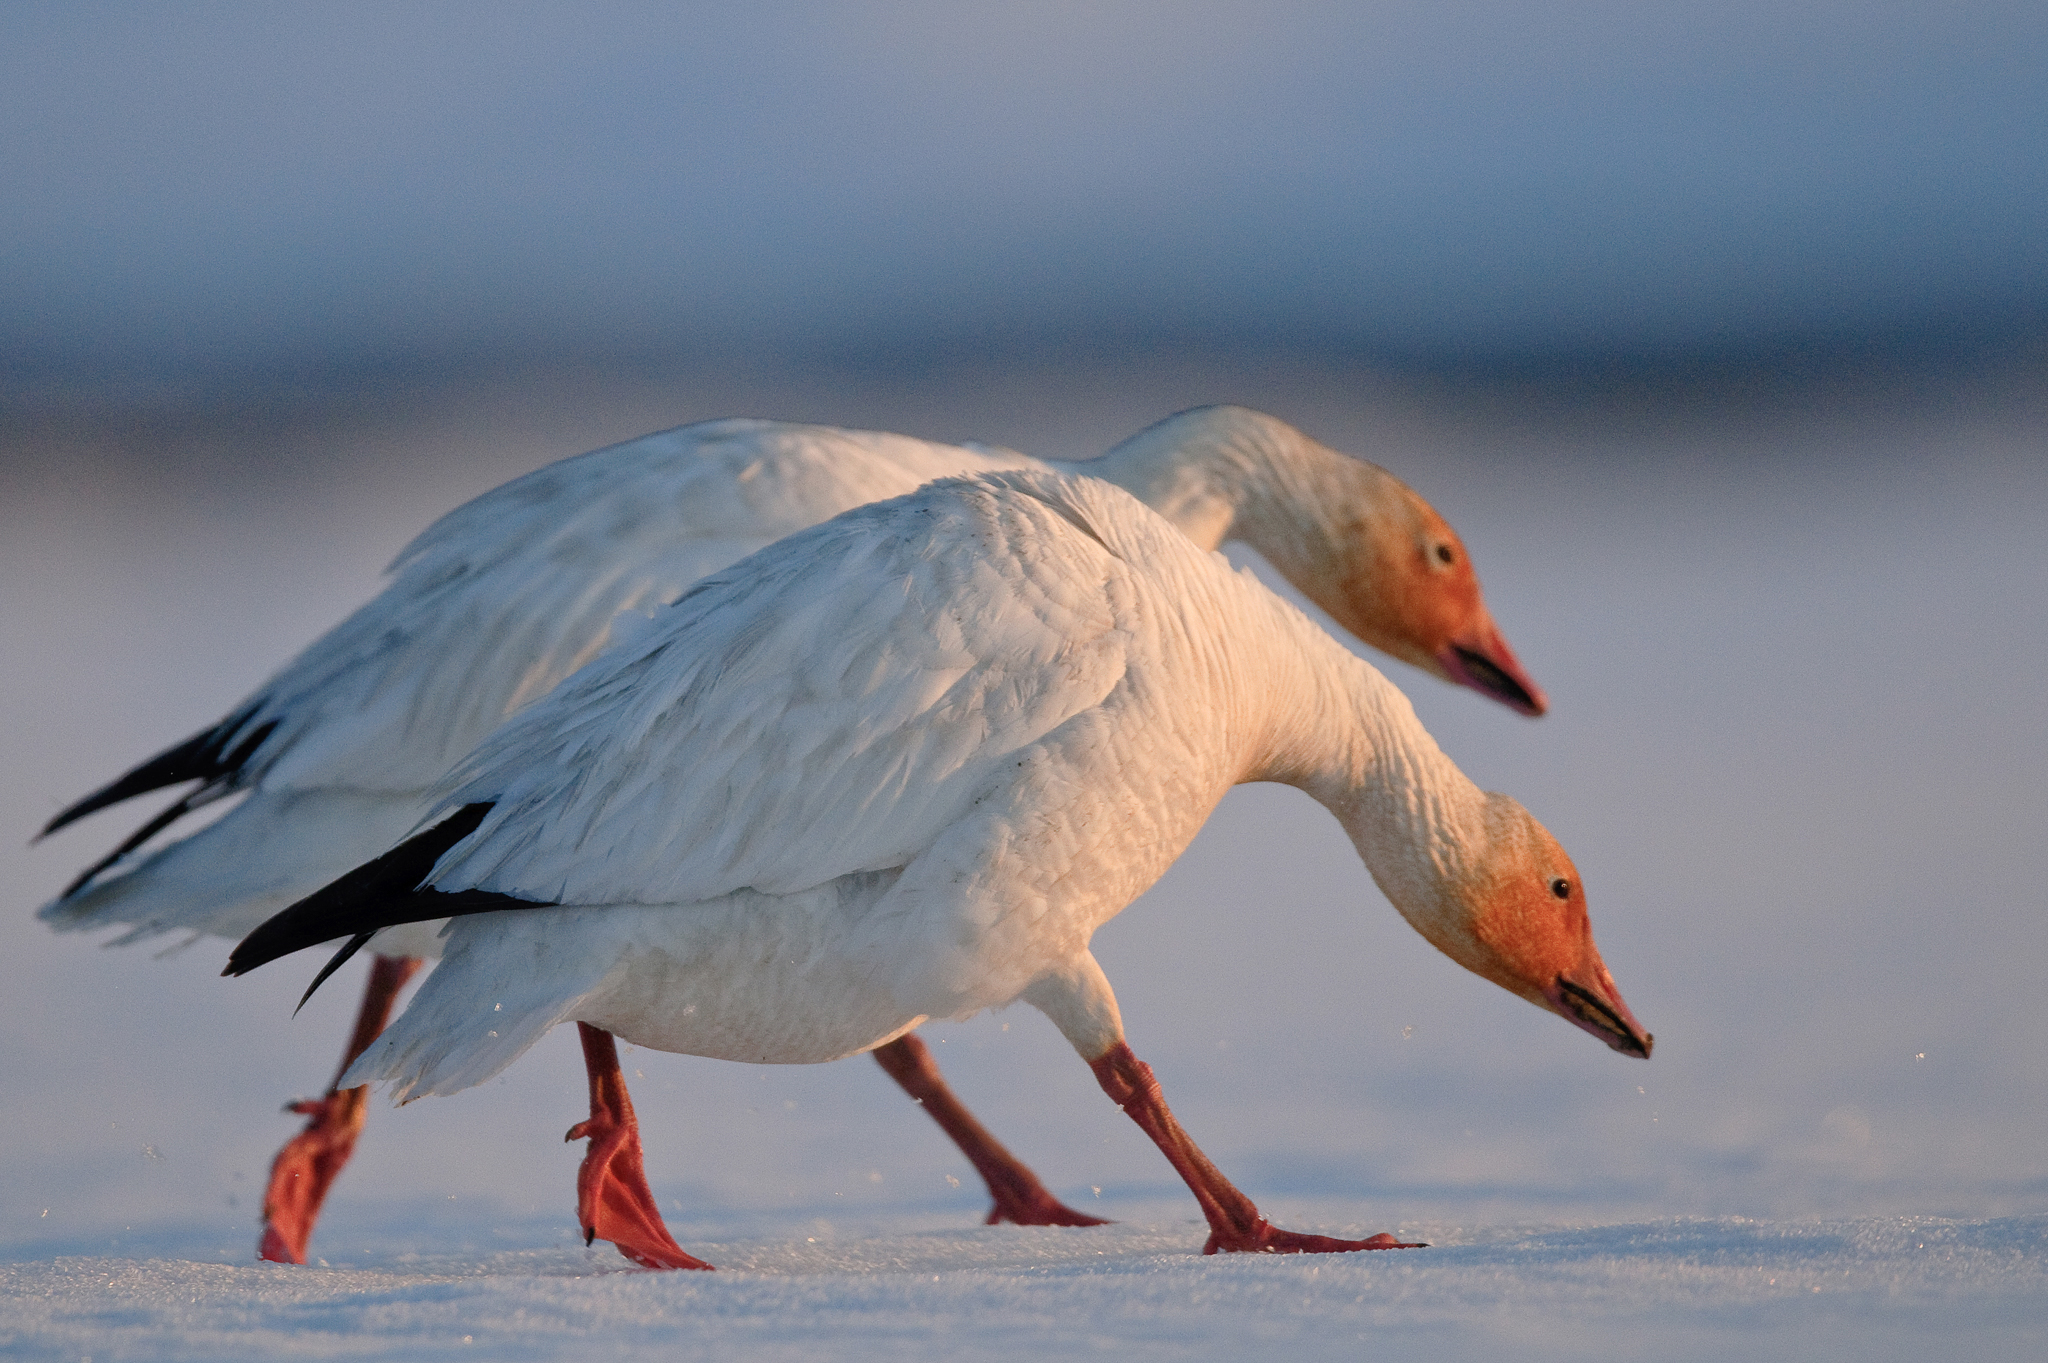 The only population of snow geese in all of Asia breeds on Wrangel island. The population's numbers are now recovering from historic lows.